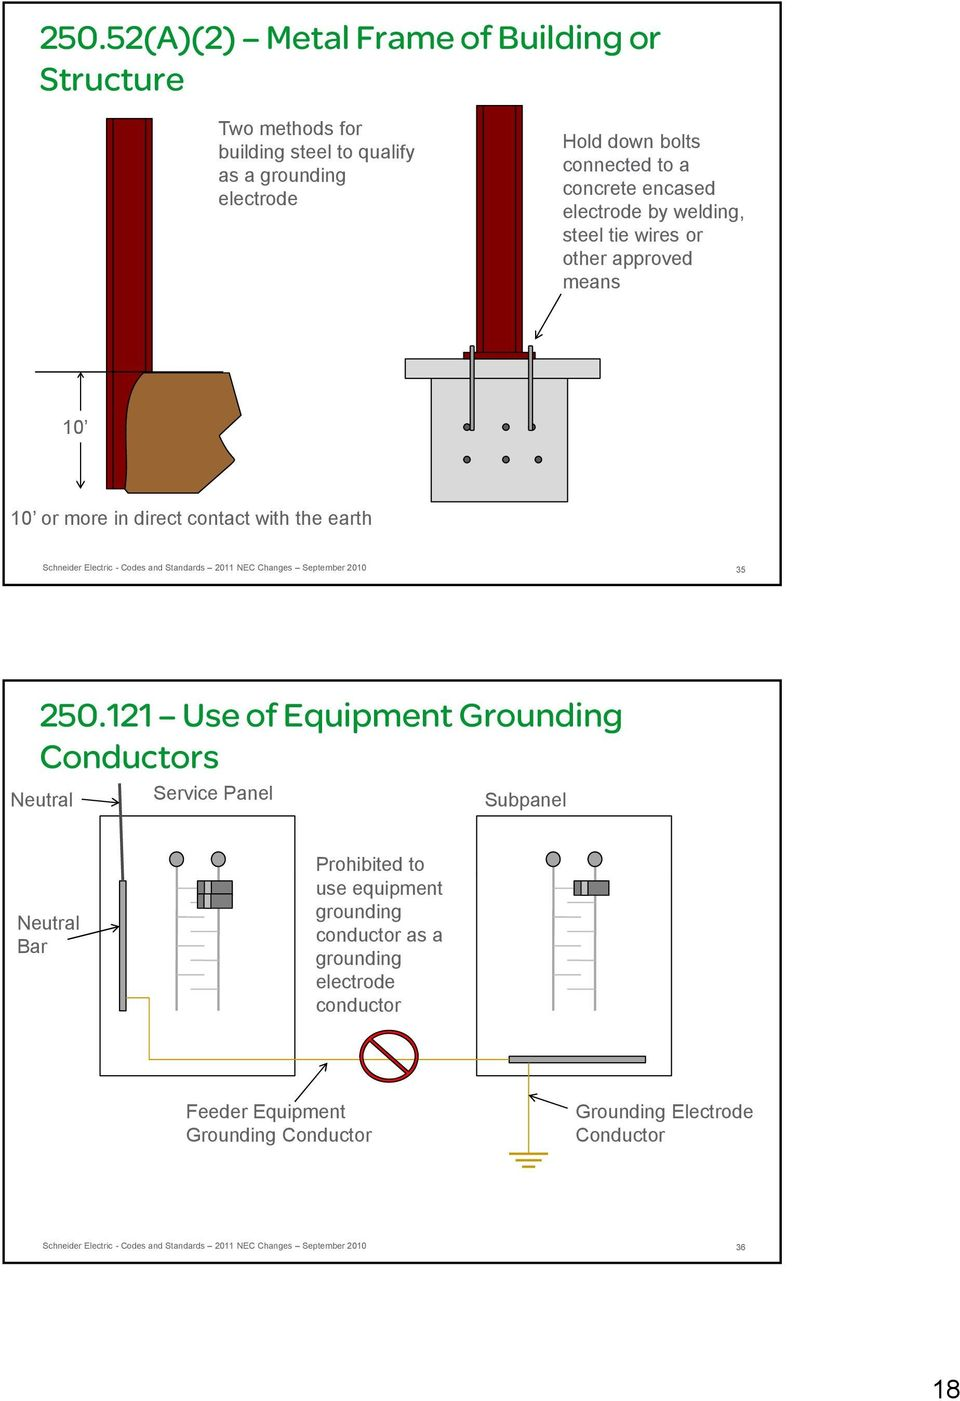 2011 National Electrical Code Changes Pdf Nec Wiring Standards Diagram Contact With The Earth 35 250